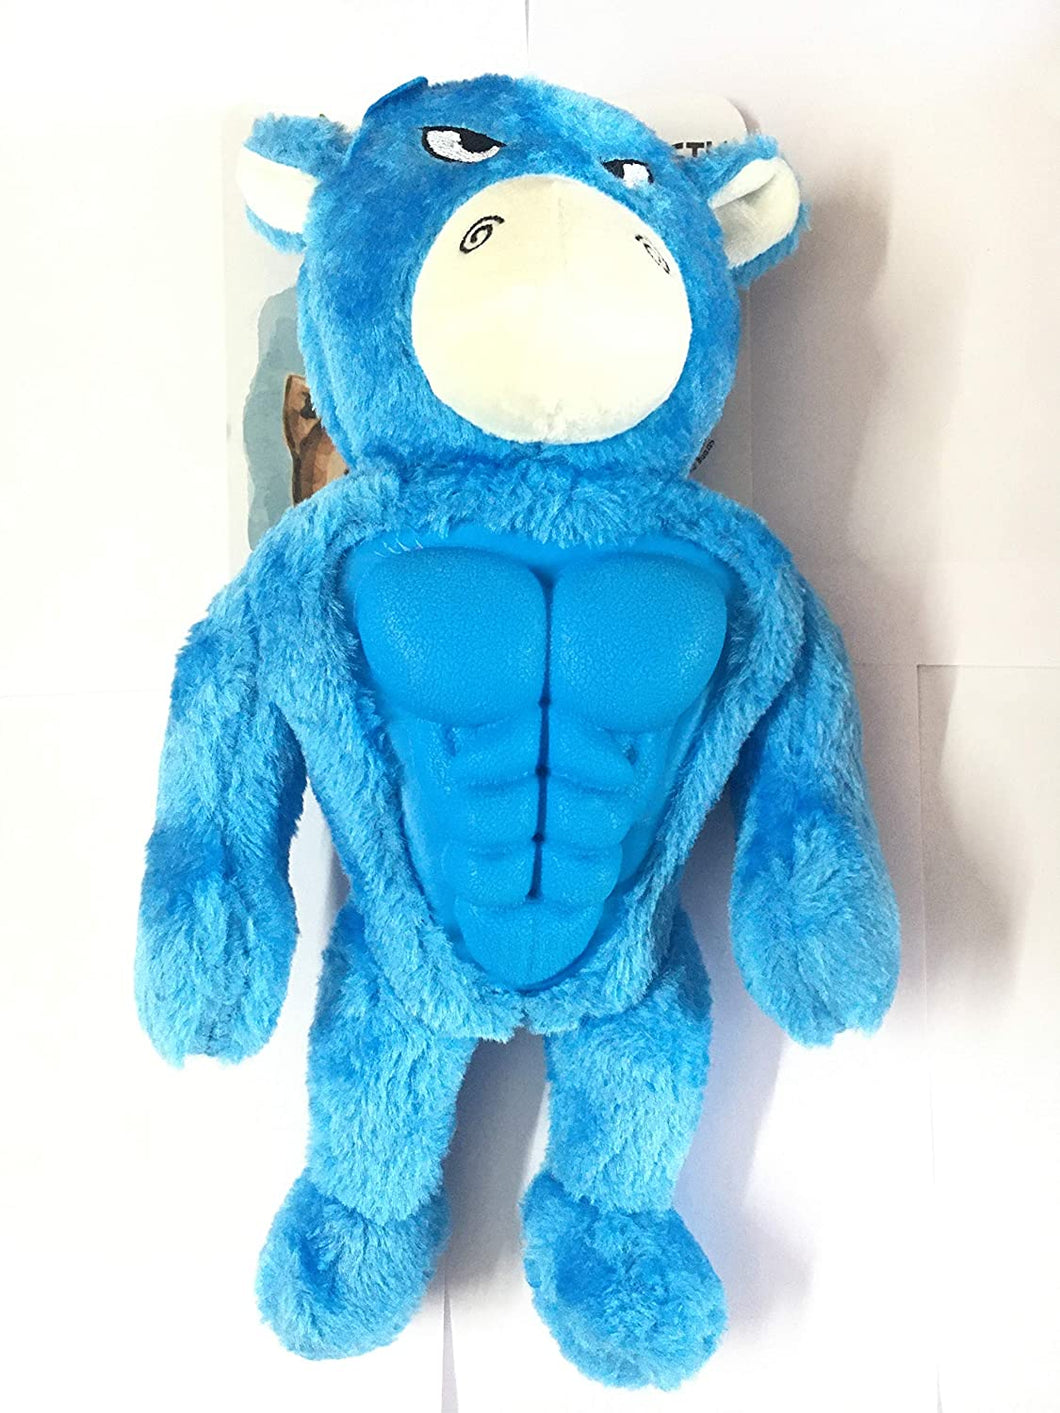 Basil Plush Toy - Blue Chimpanzee